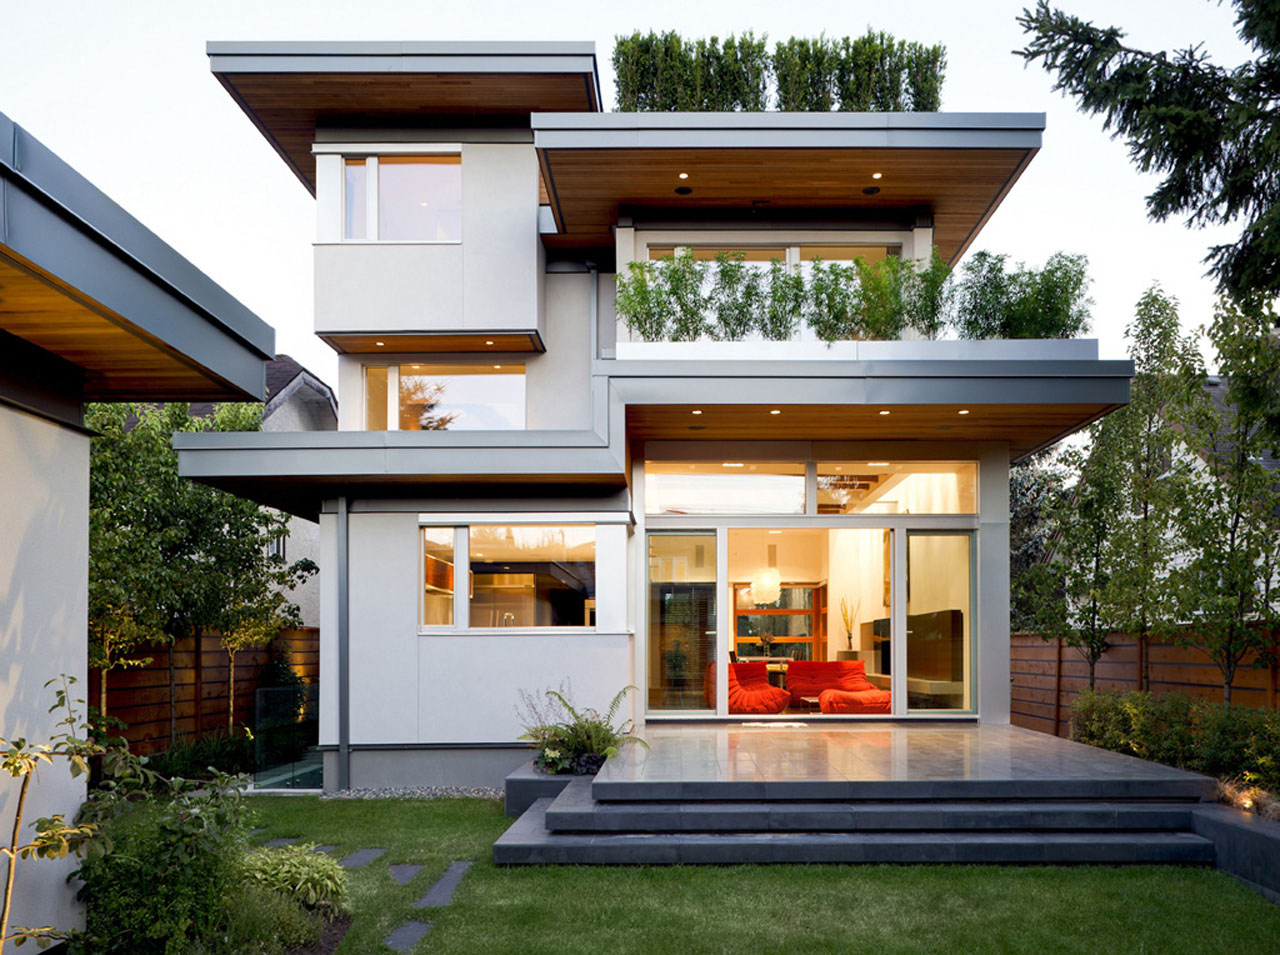 sustainable home design in vancouver - Home Design Images